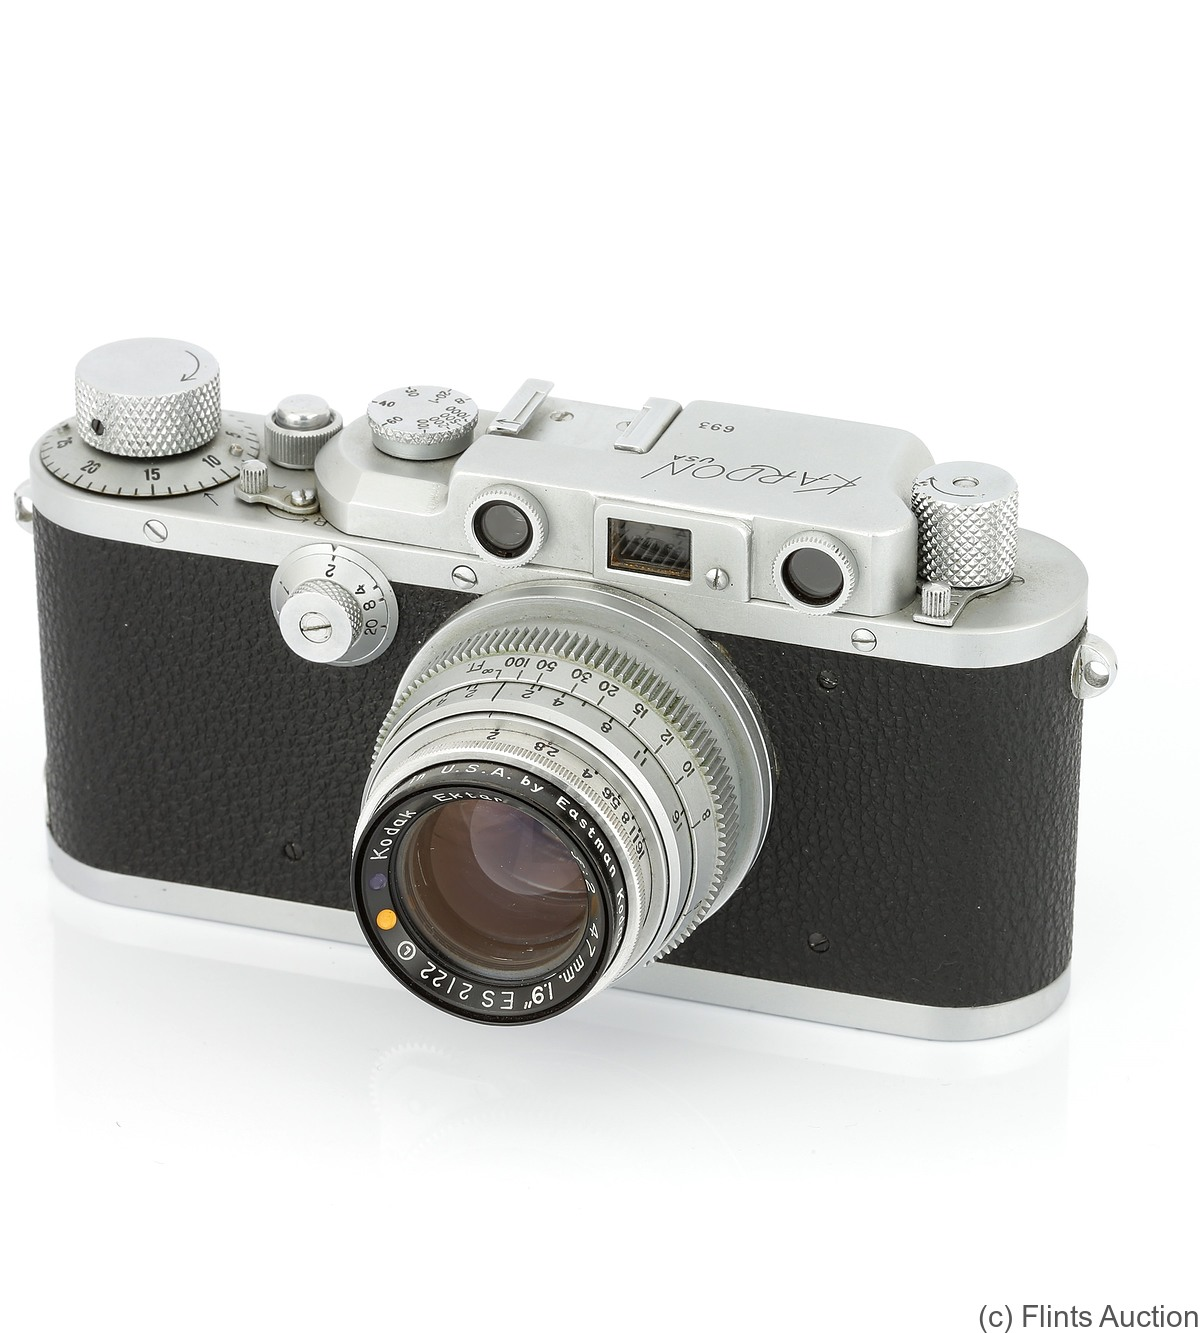 Premier Instruments: Kardon (Civilian) camera